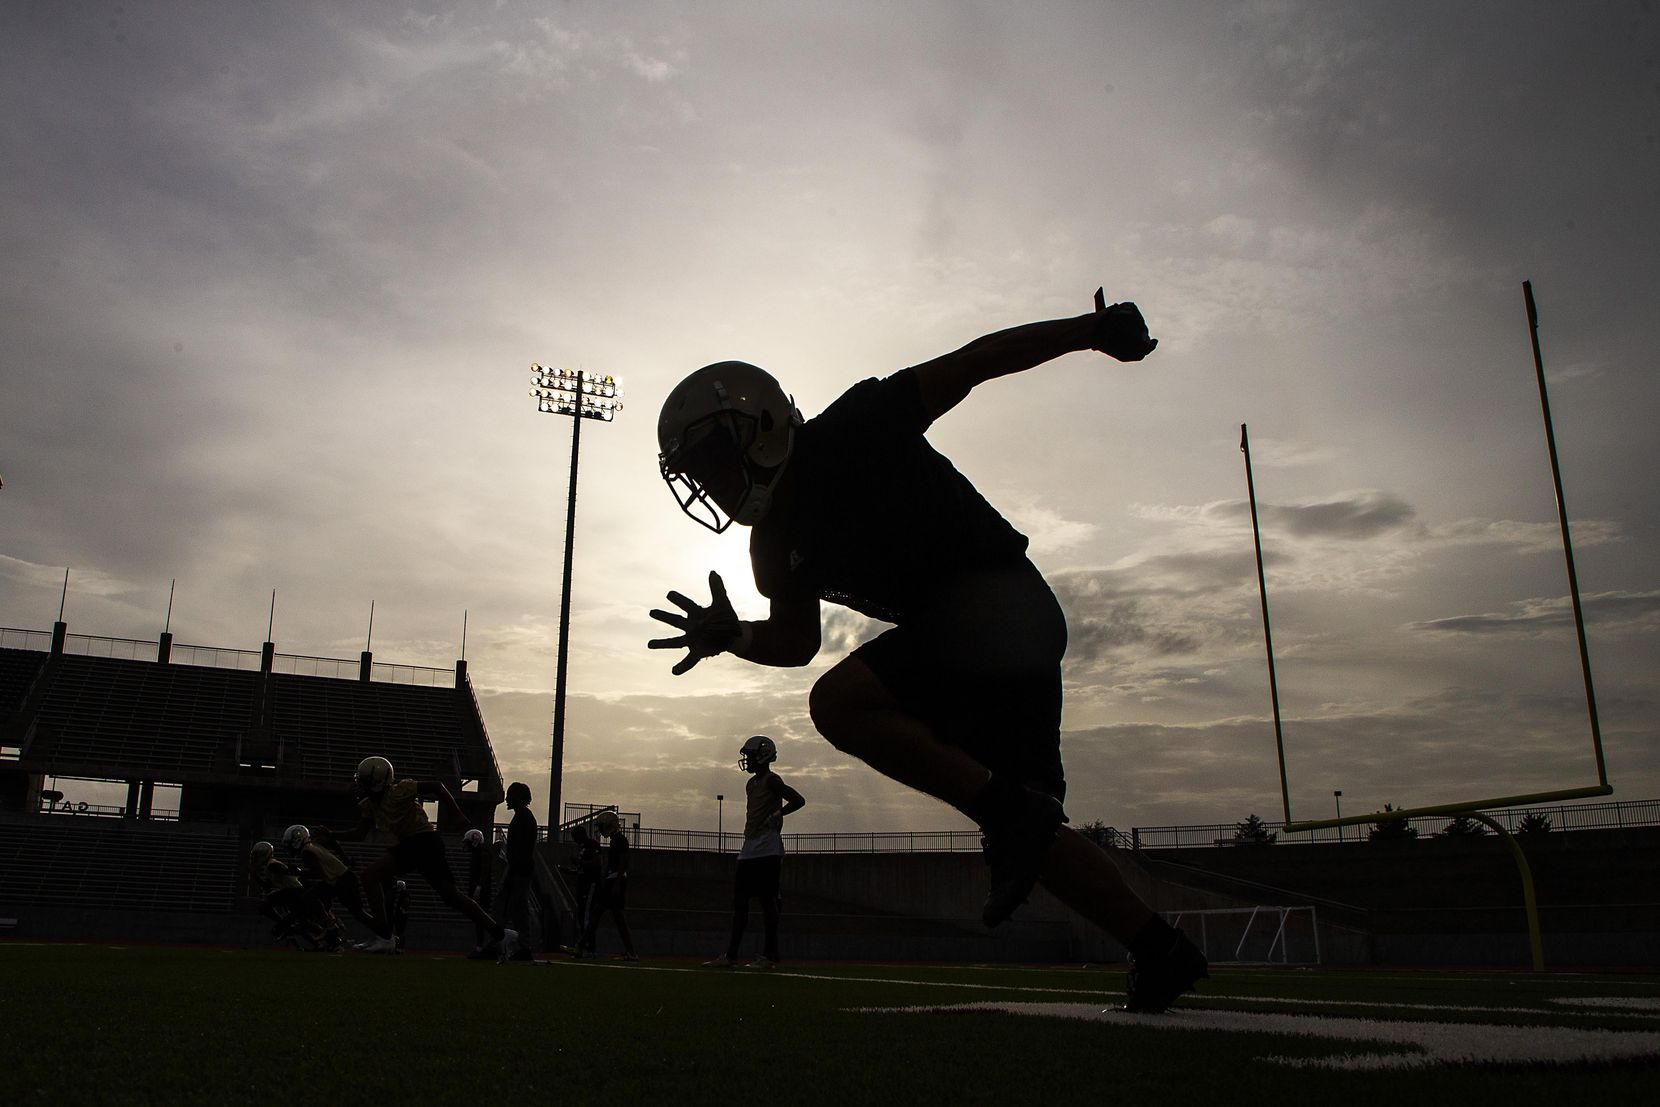 South Oak Cliff players run a drill during their season-opening football practice at John Kincaide Stadium on Monday, Aug. 13, in Dallas.